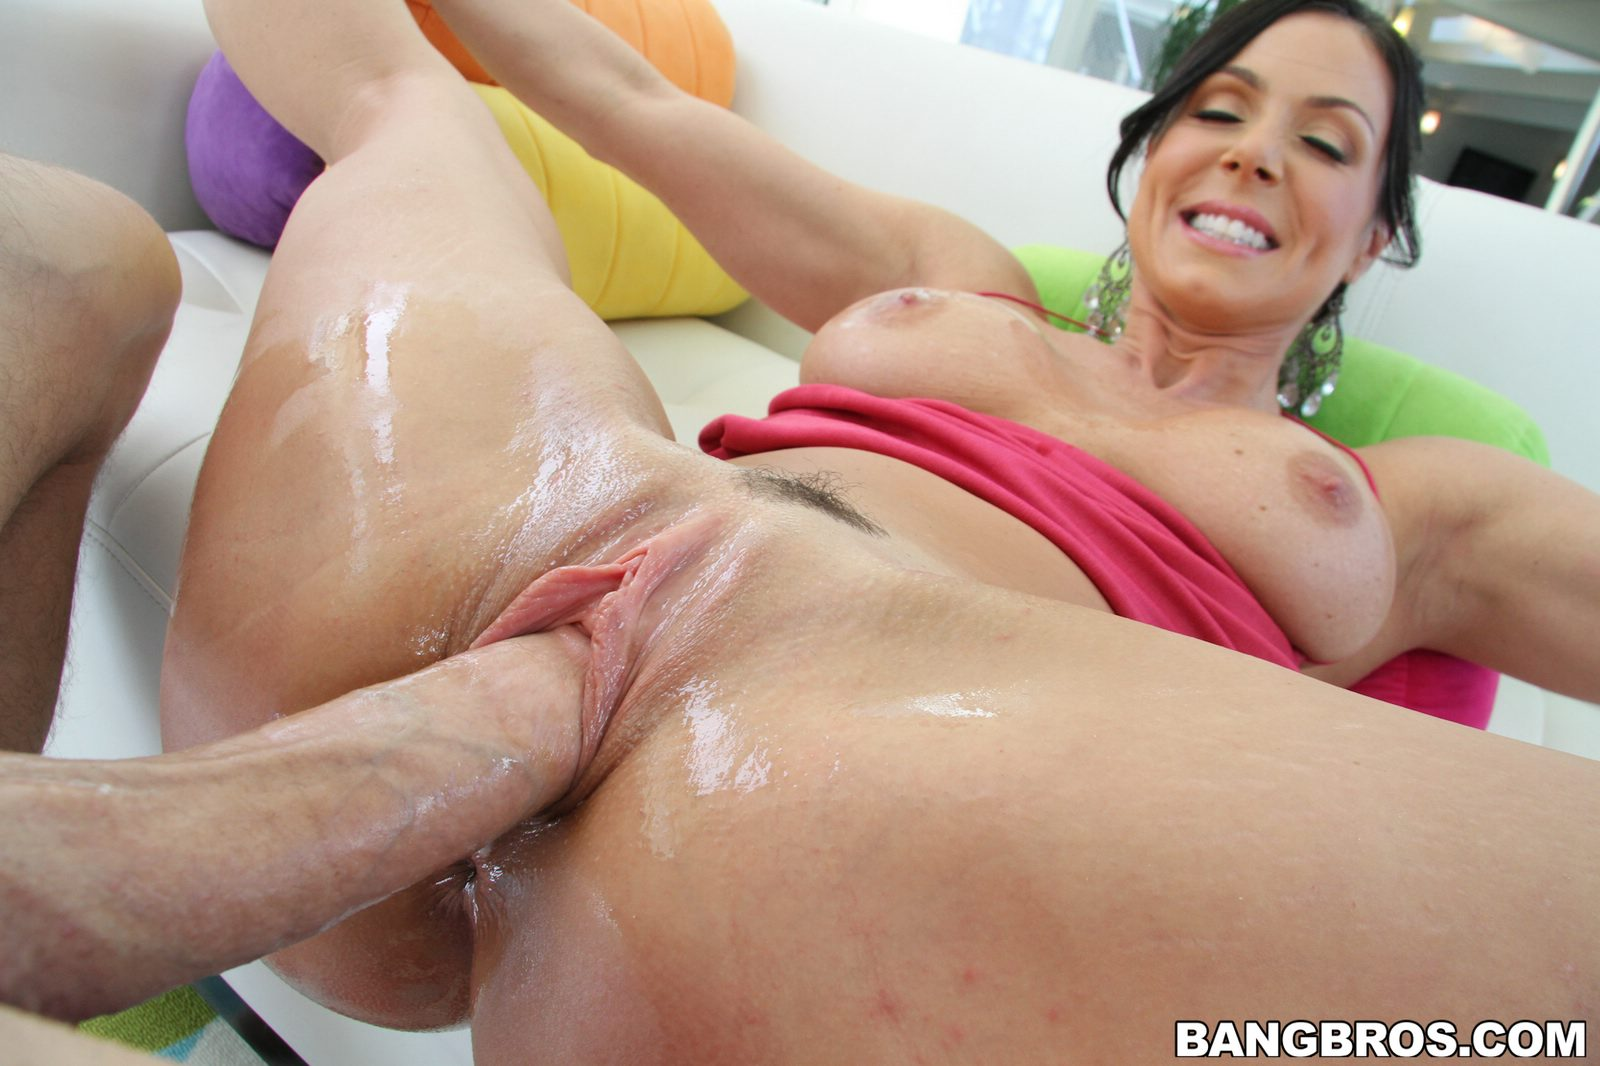 Congratulate, this Kendra lust milf sex right!